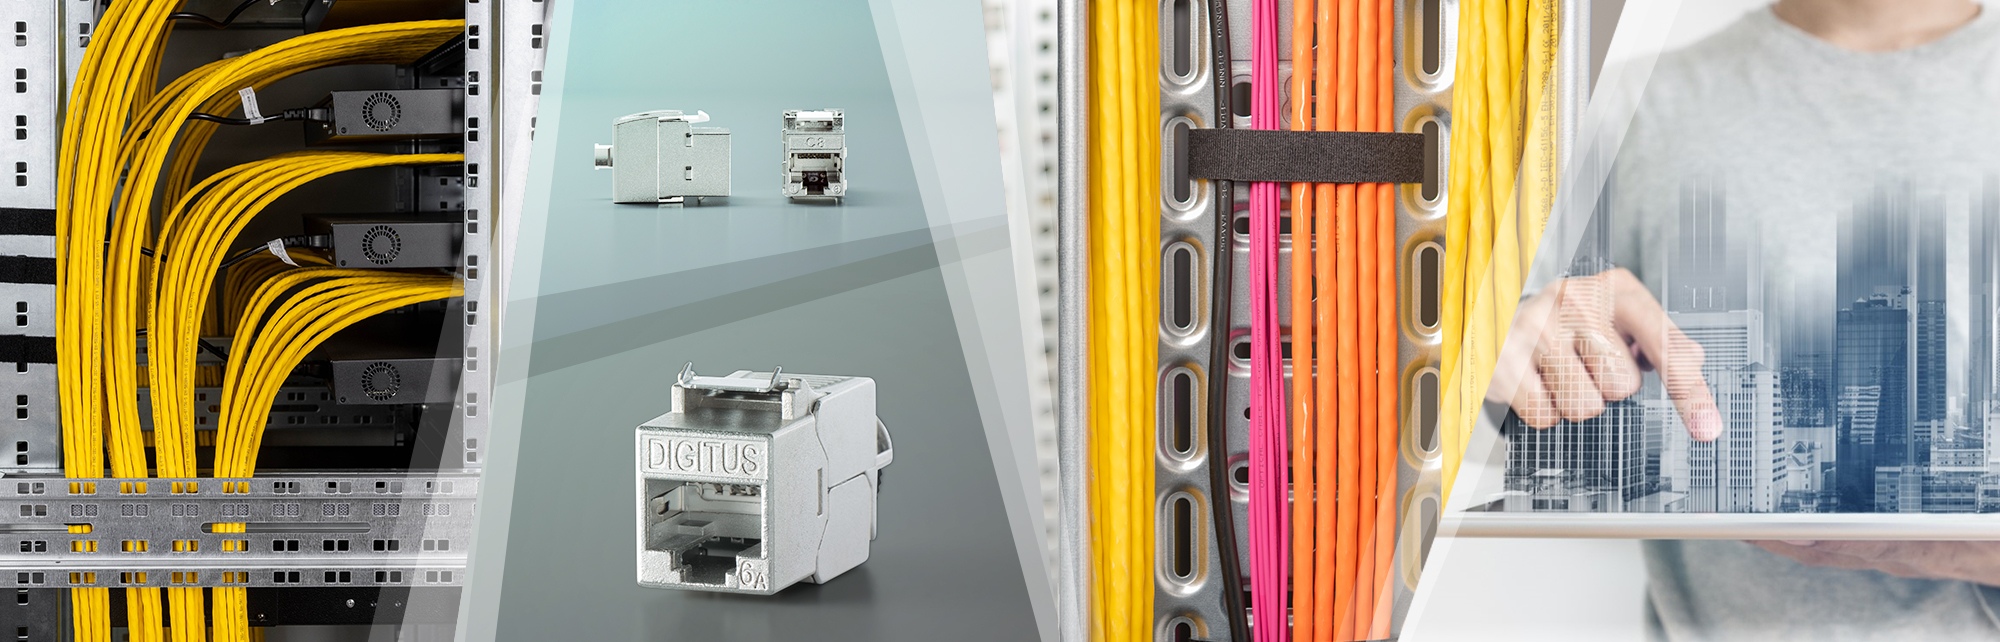 Structured building cabling